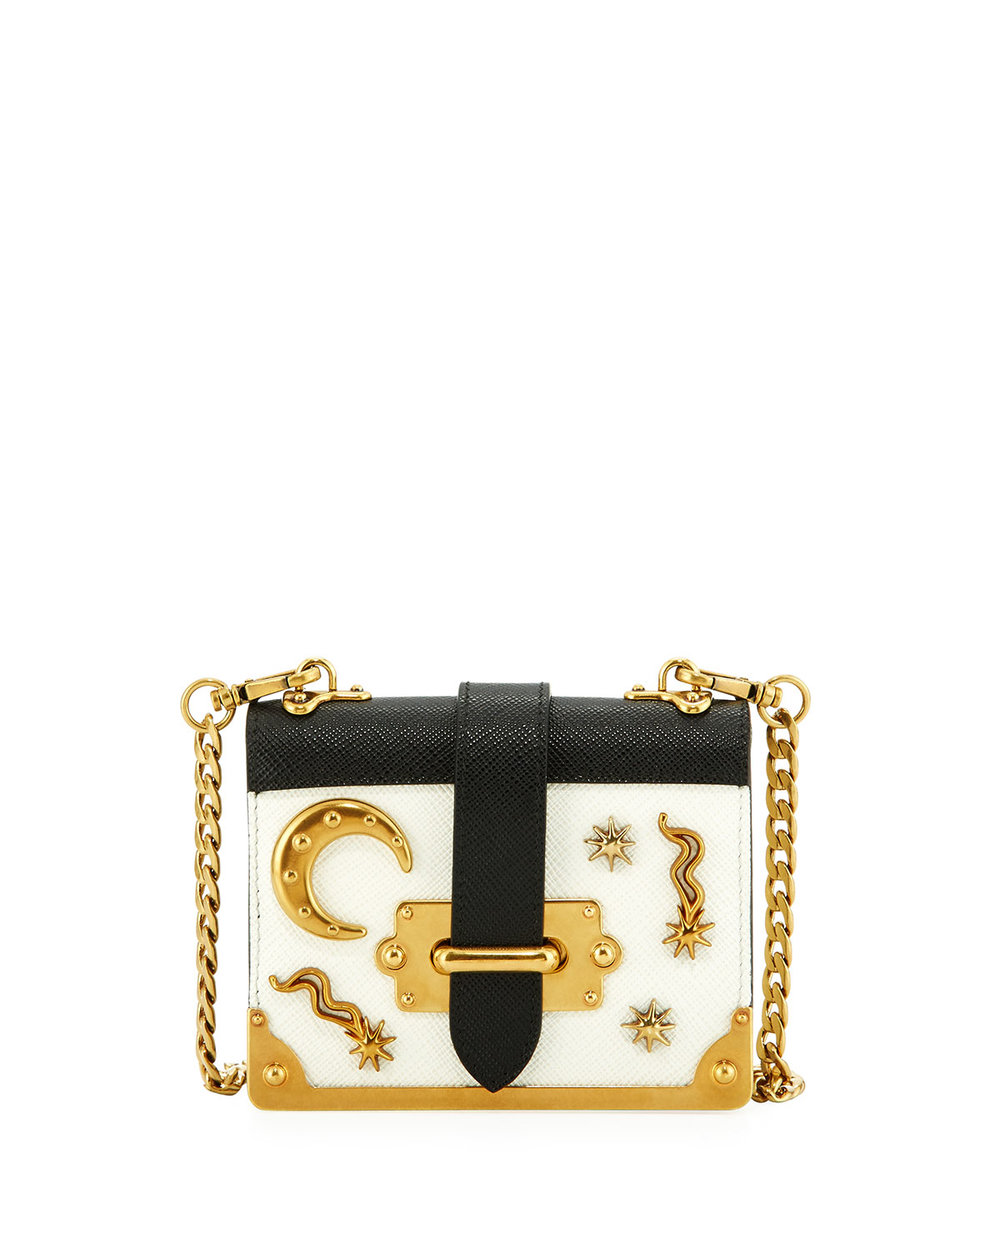 prada black + white + gold bag